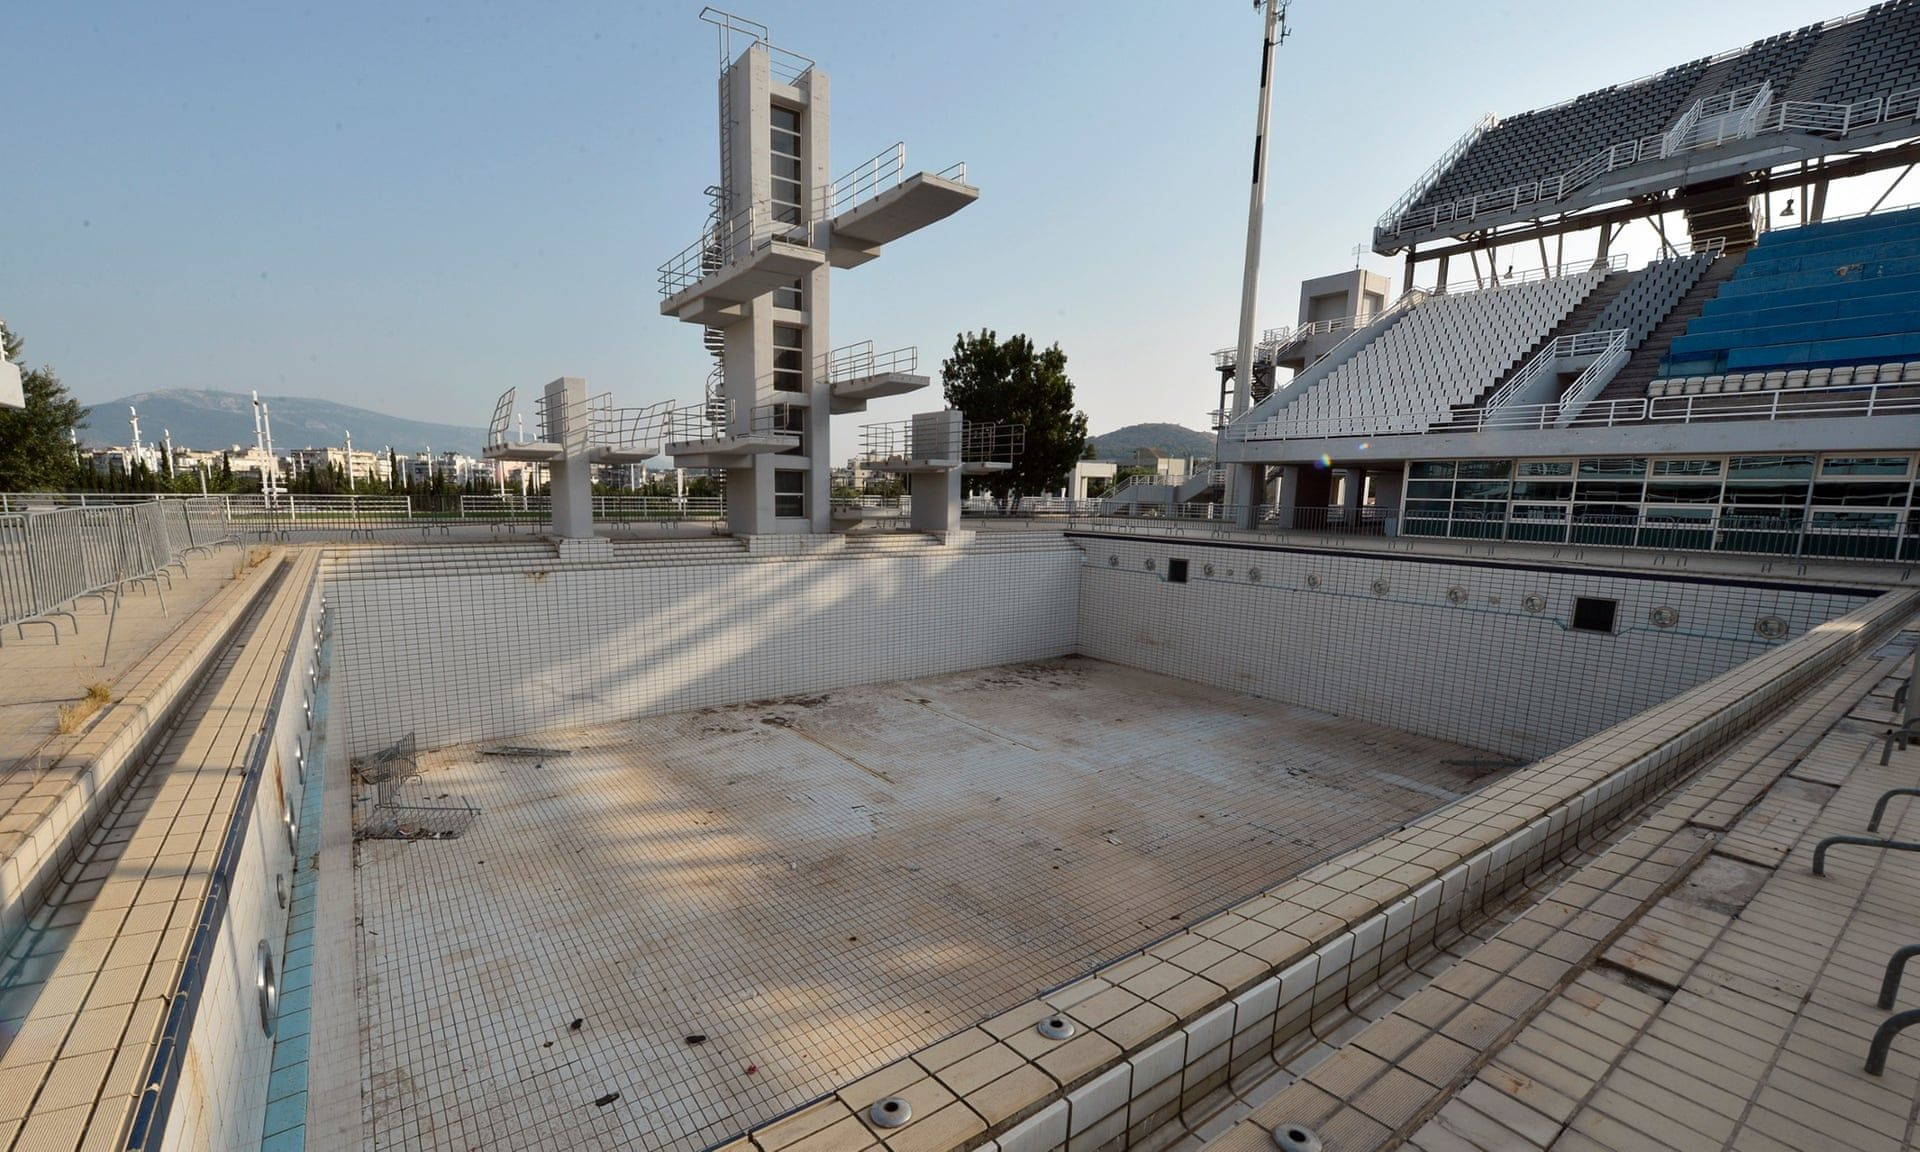 Abandoned Athens Olympic 2004 Venues 10 Years On In Pictures Olympic Venues Abandoned Places Abandoned